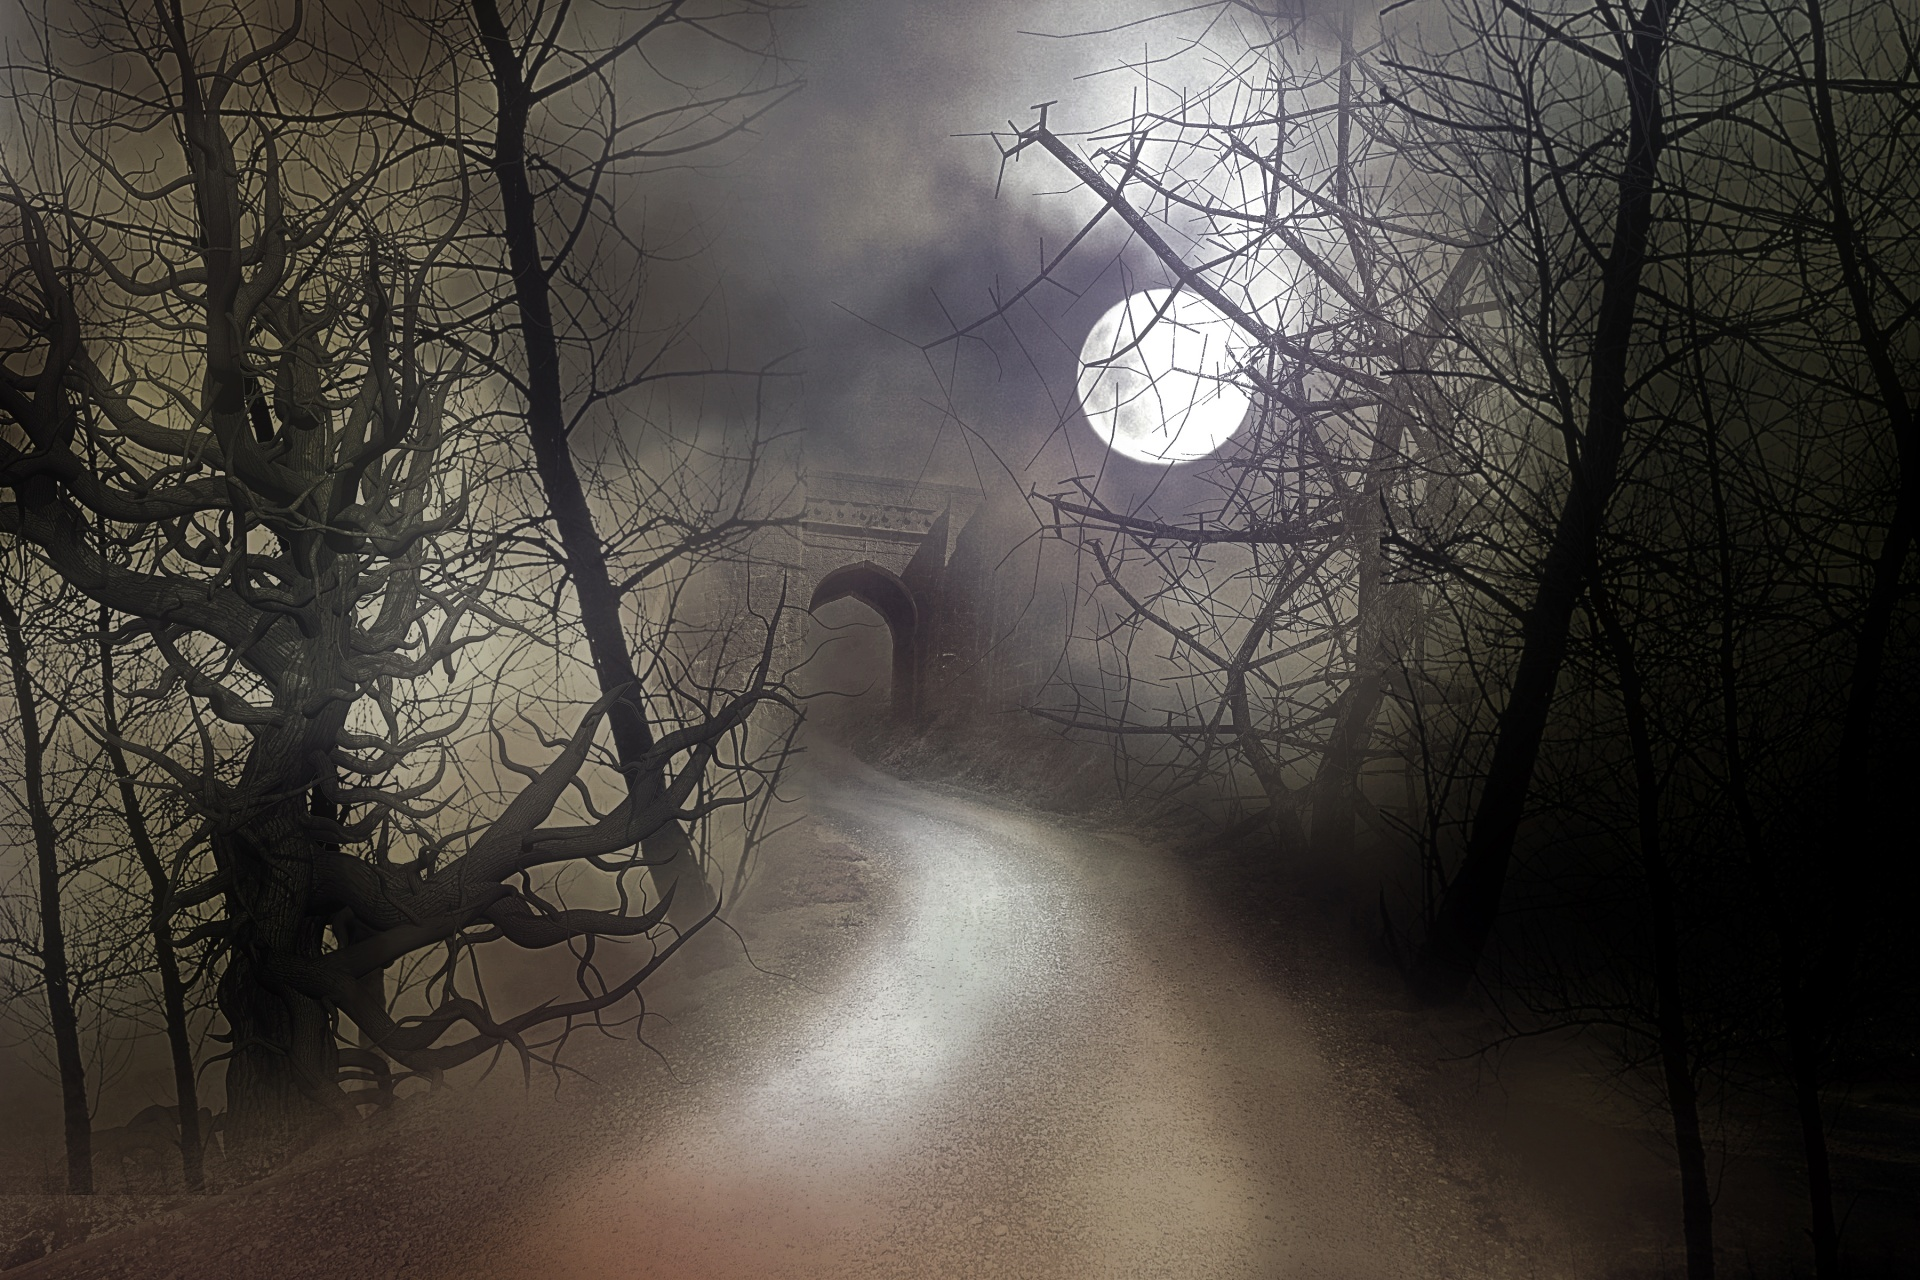 Misty Moonlit Night Free Stock Photo - Public Domain Pictures